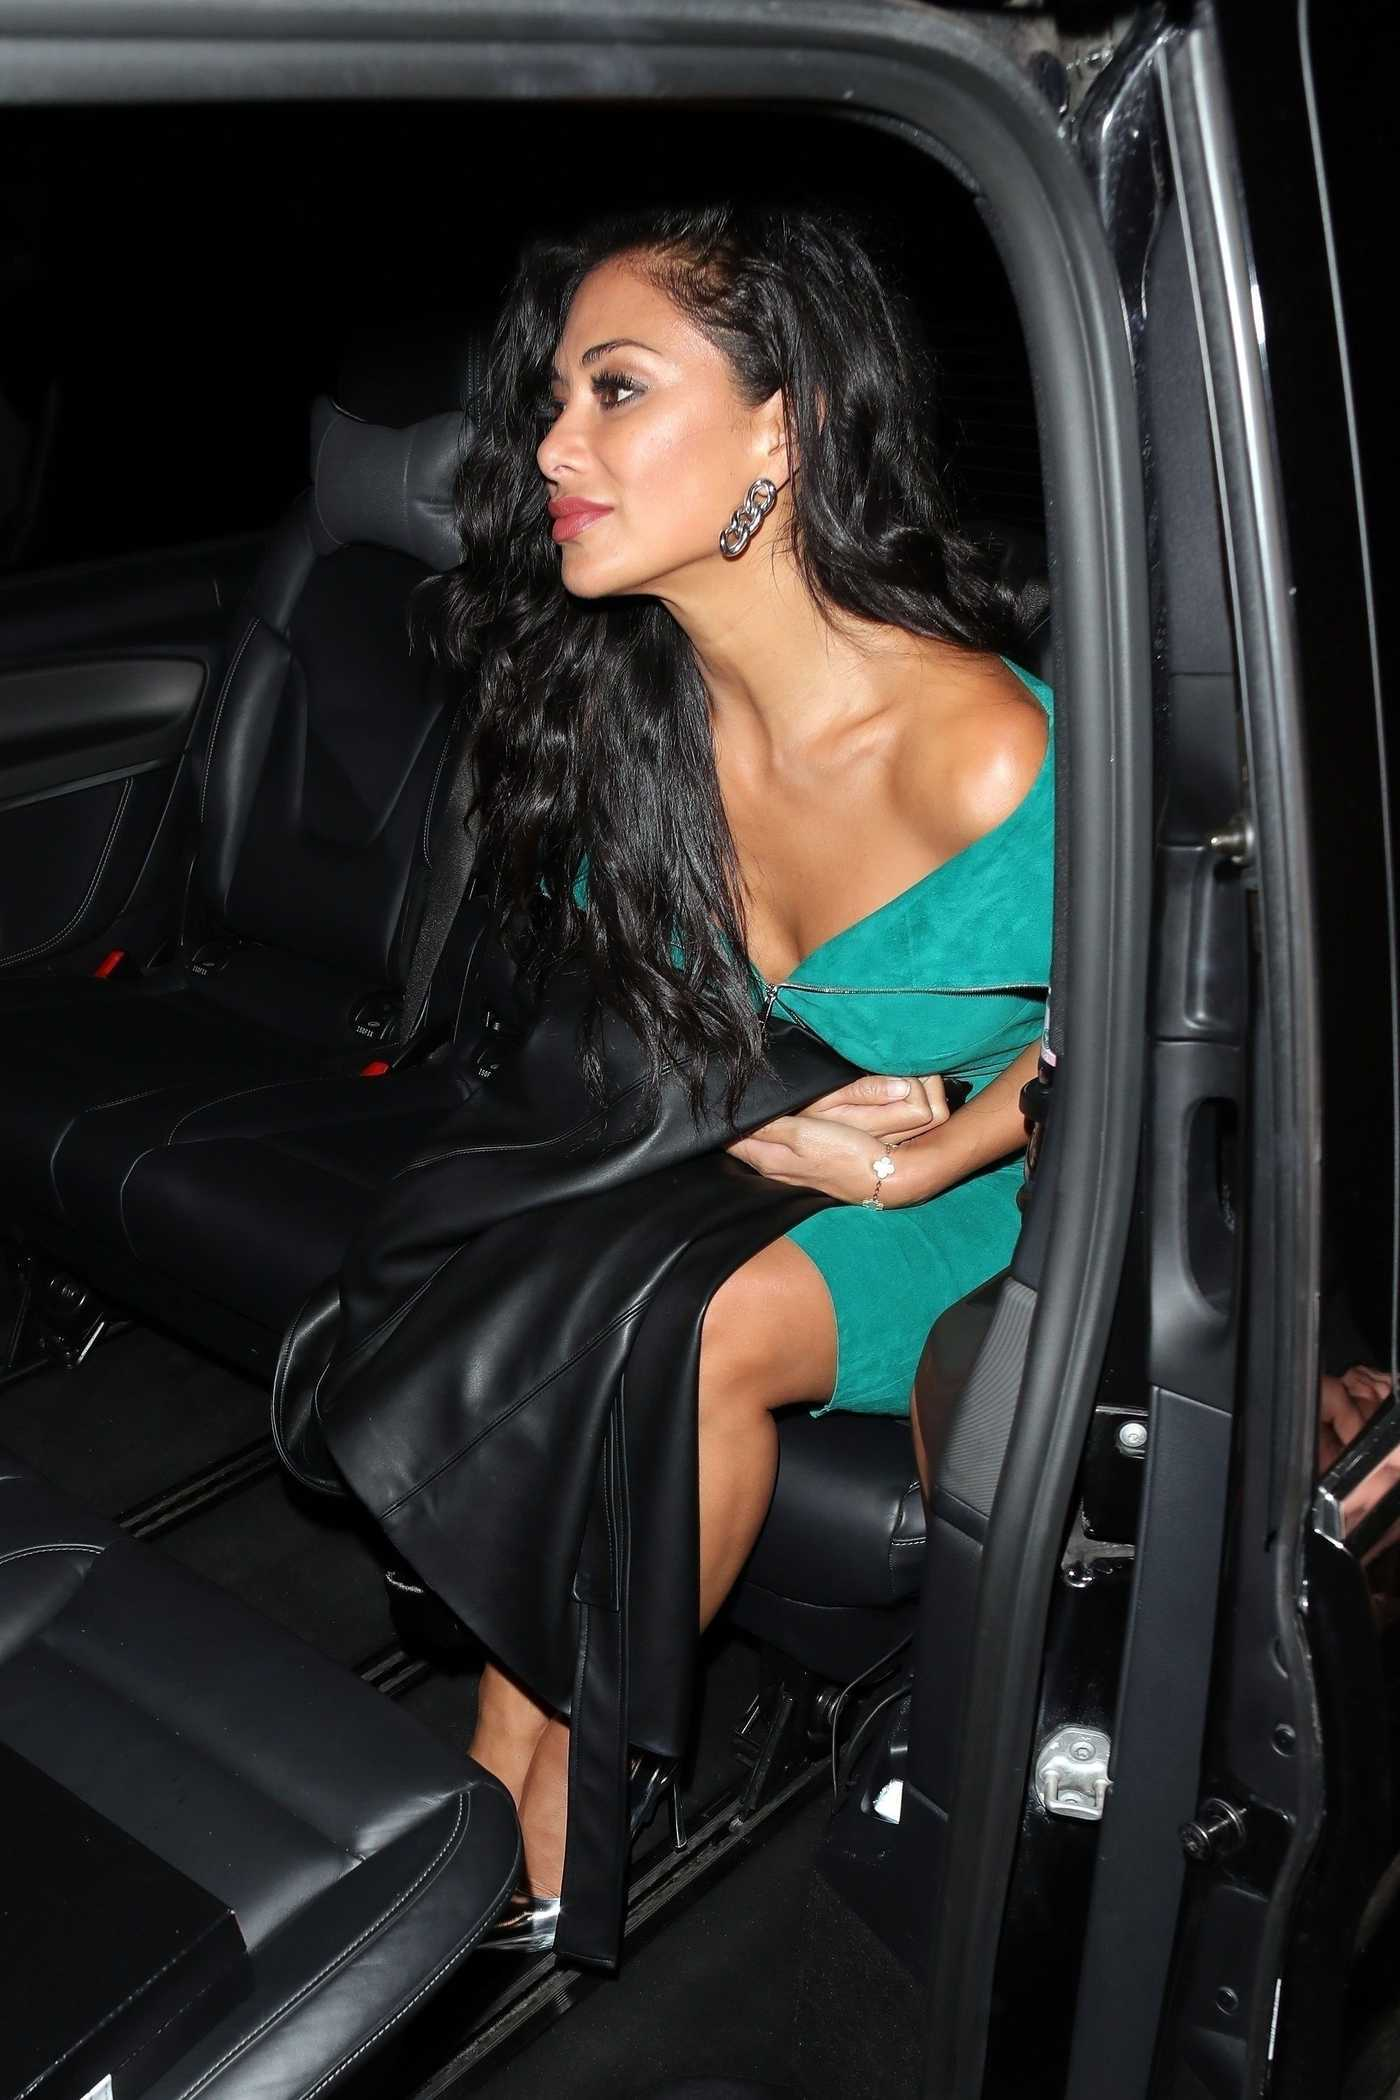 Nicole Scherzinger in a Green Dress Arrives at the Tape Nightclub in London 10/27/2018